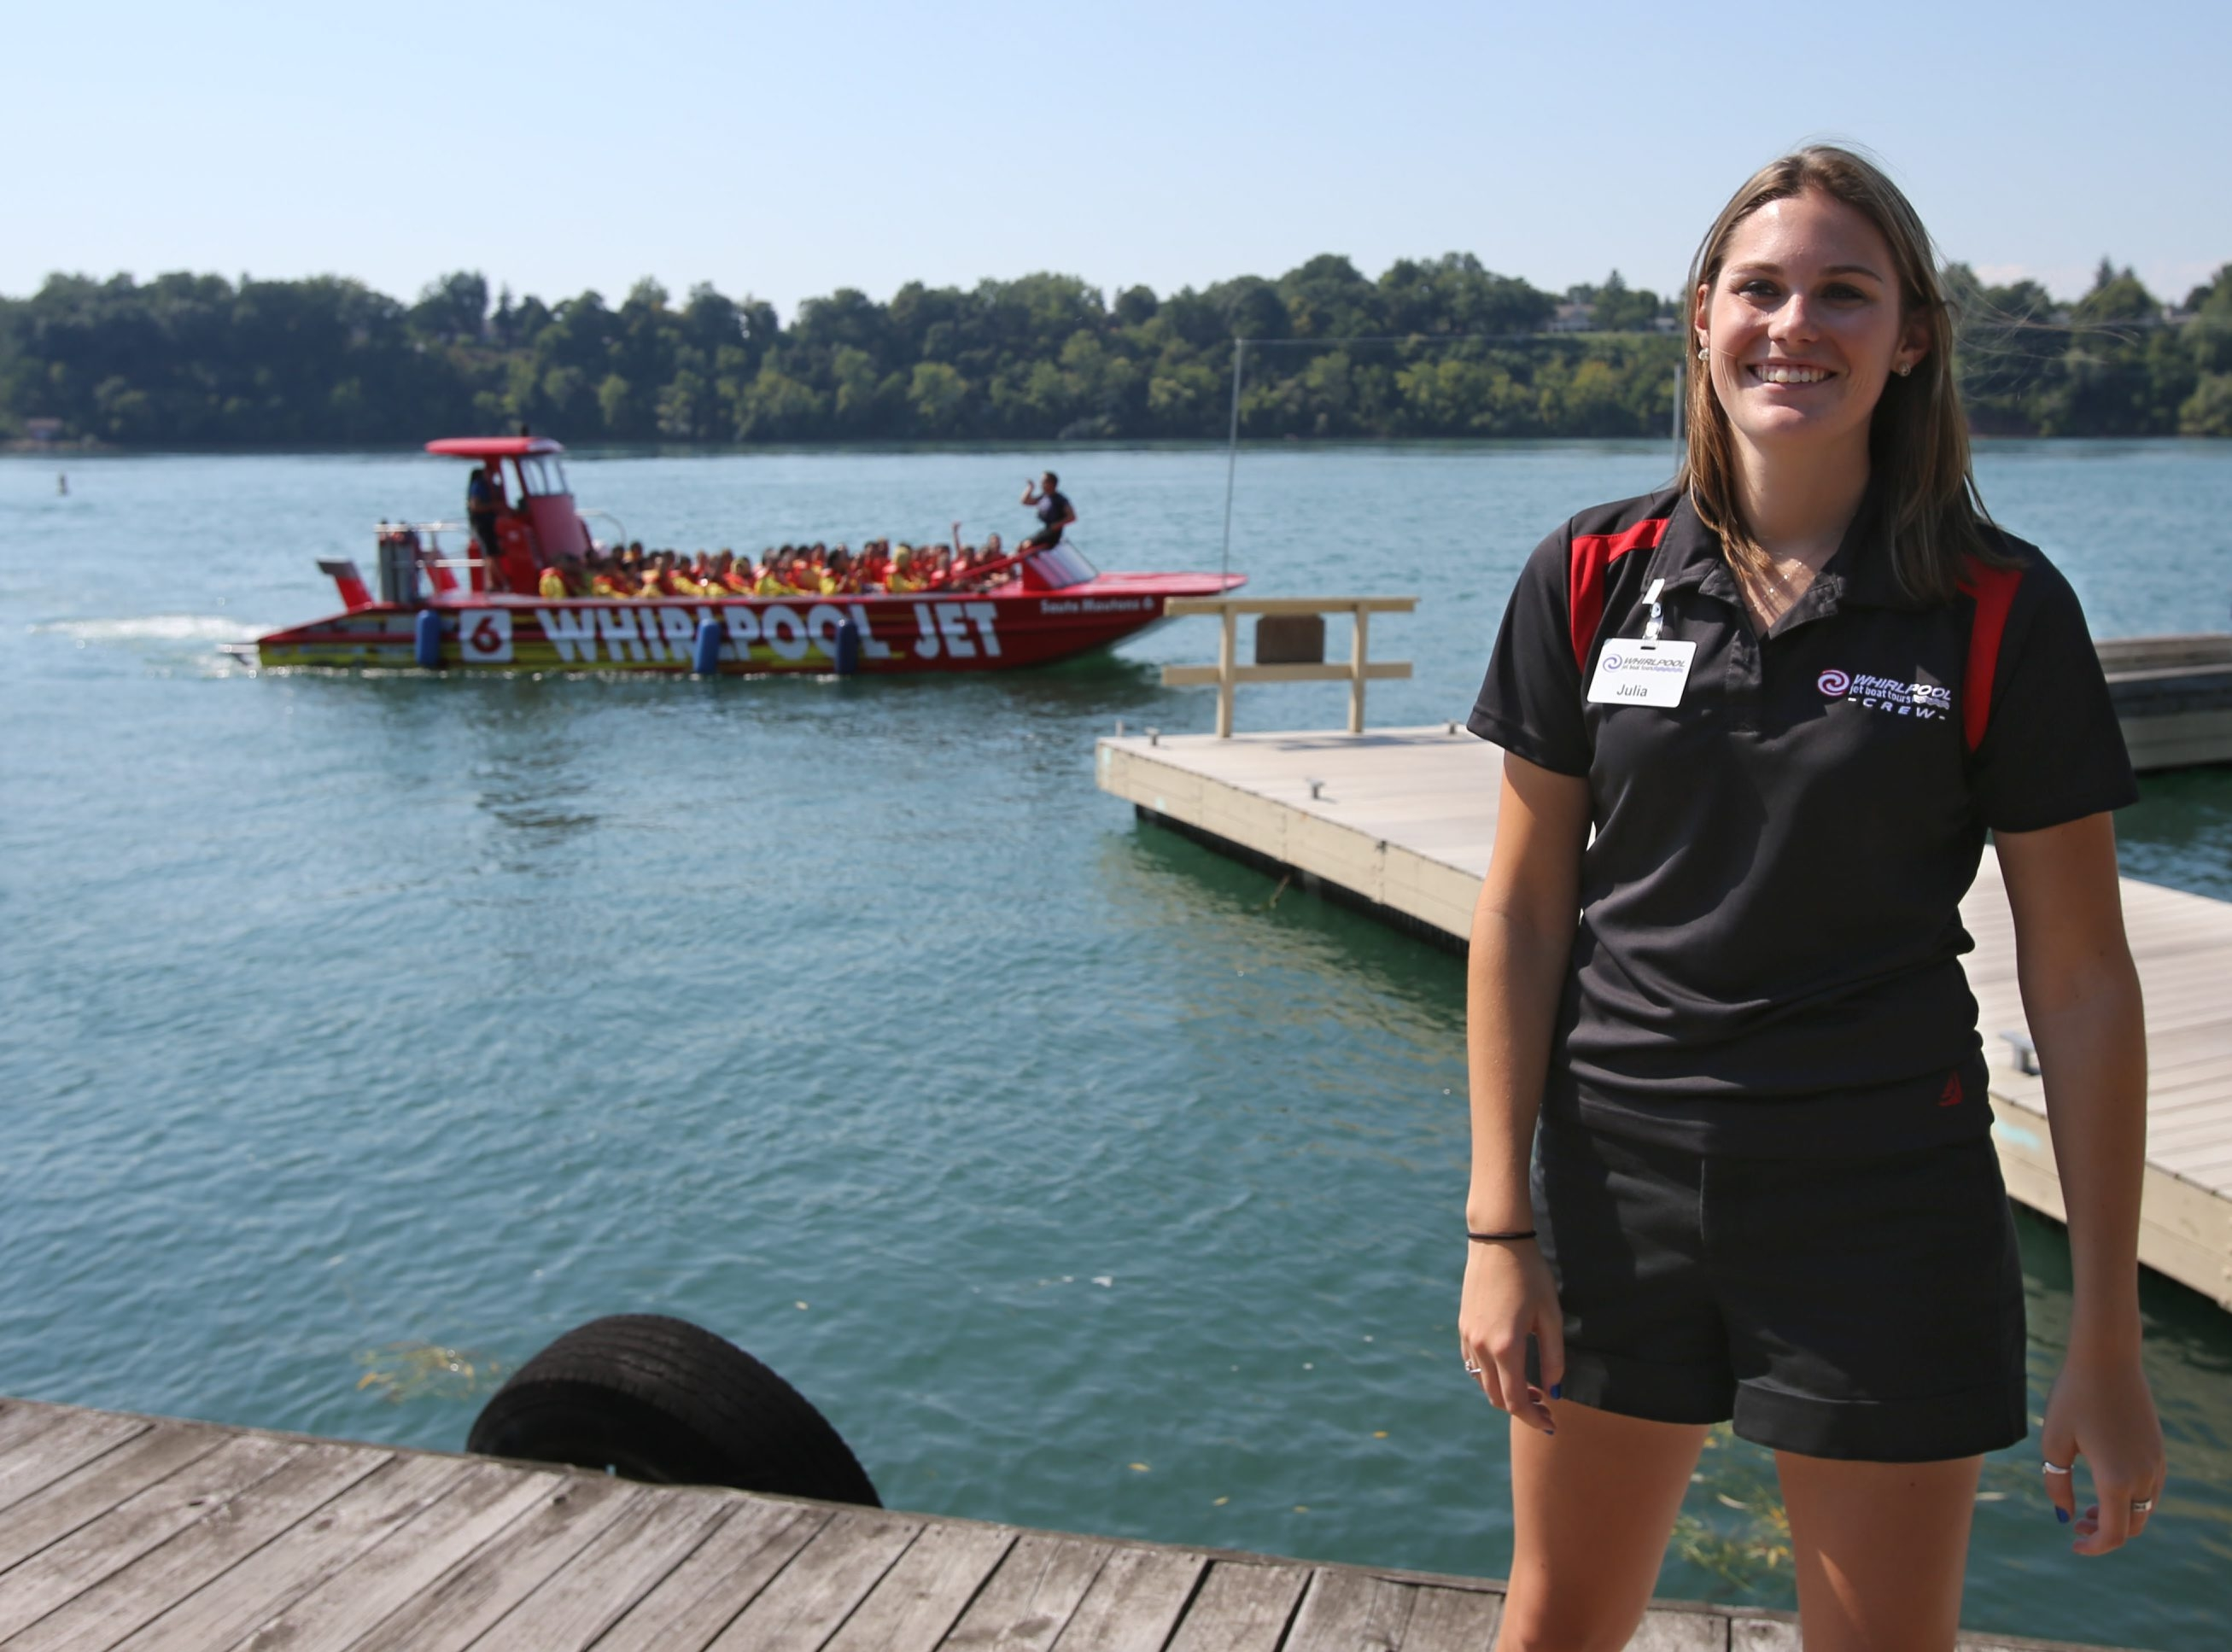 Julia Kling is a supervisor for the Whirlpool Jet Boat Tours.